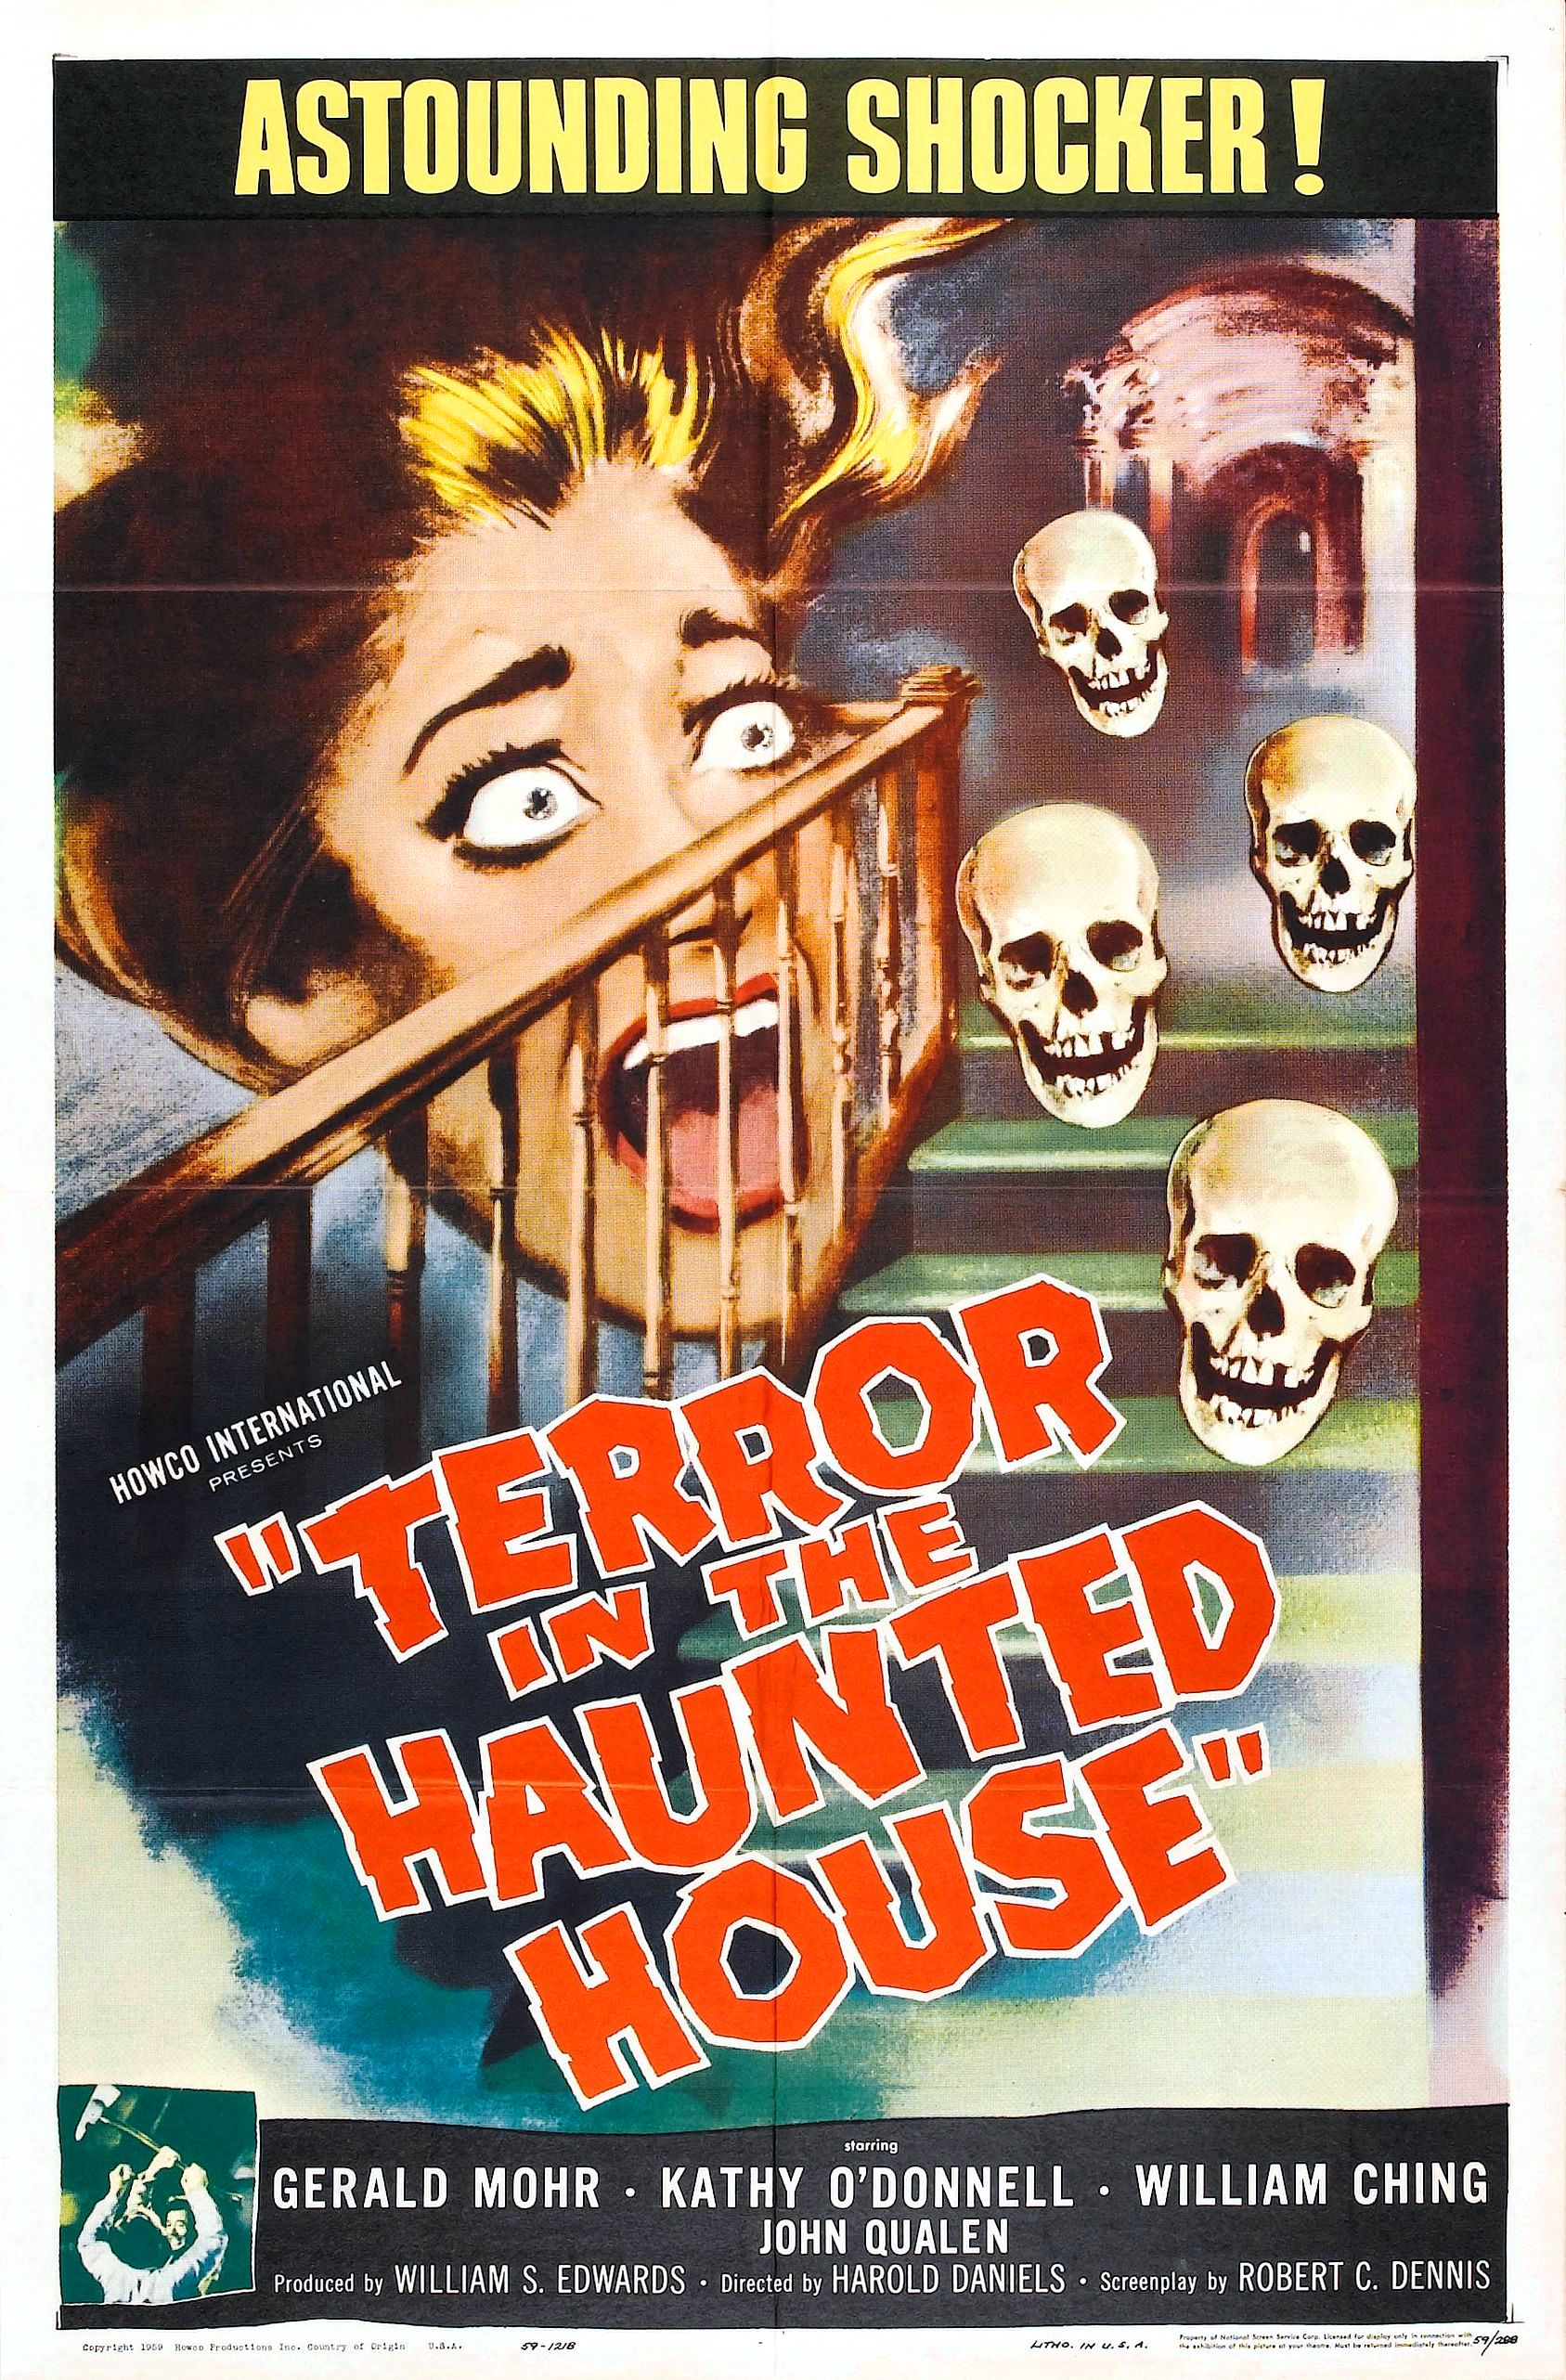 terror-in-the-haunted-house-1kite44terror-in-the-haunted-house-1terror-in-the-haunted-house-15terror-in-the-haunted-house-28terror-in-the-haunted-house-4